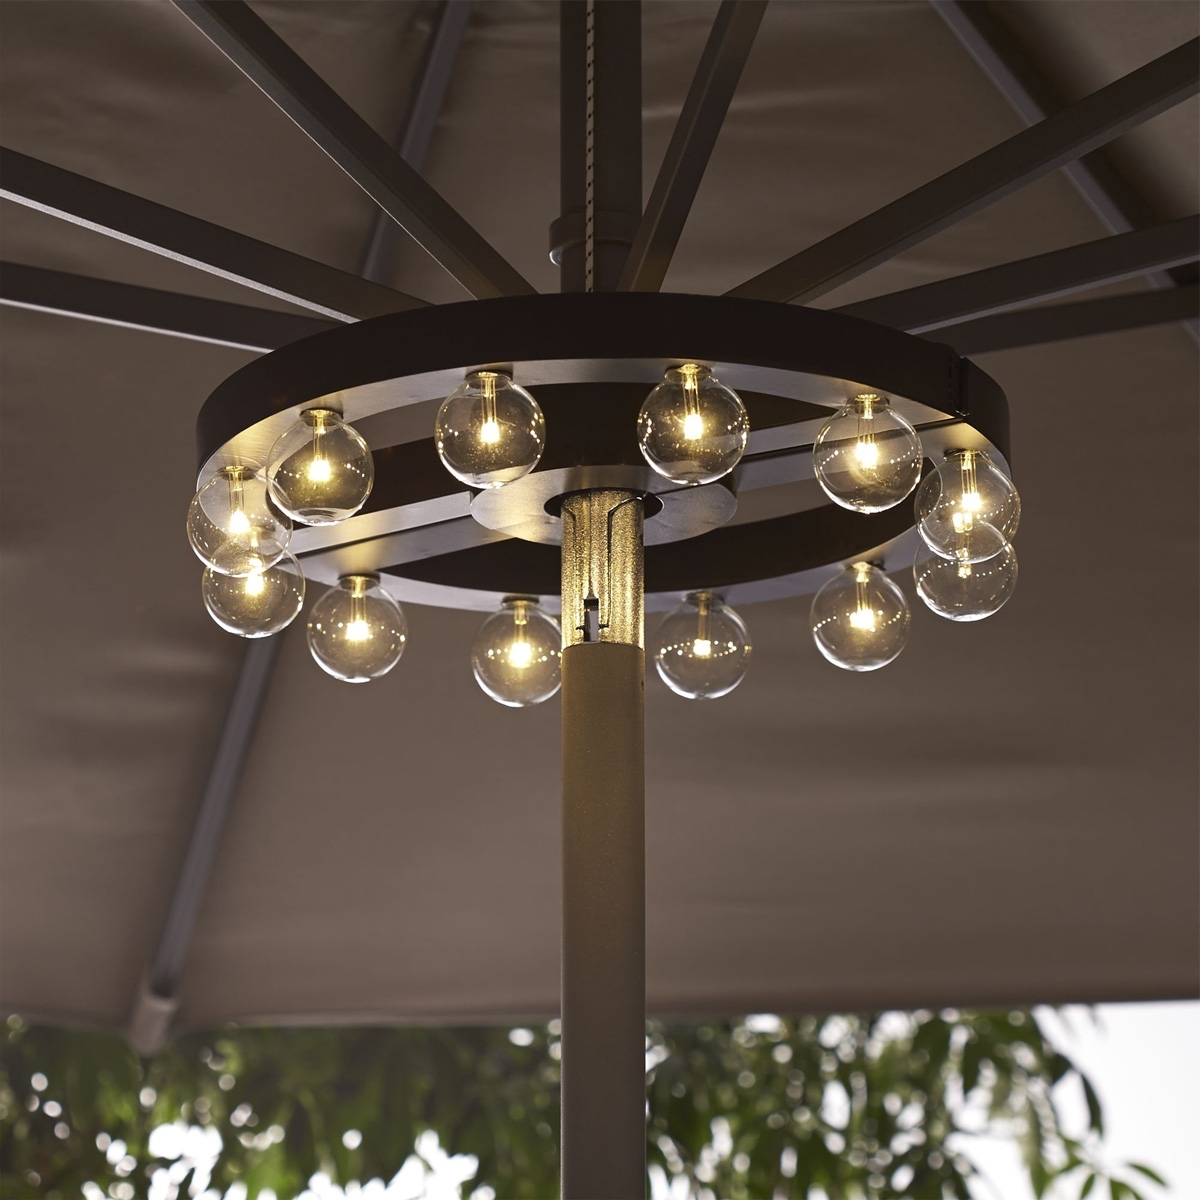 Patio Umbrella Light — Mistikcamping Home Design : Different Patio With Recent Lighted Patio Umbrellas (View 4 of 20)